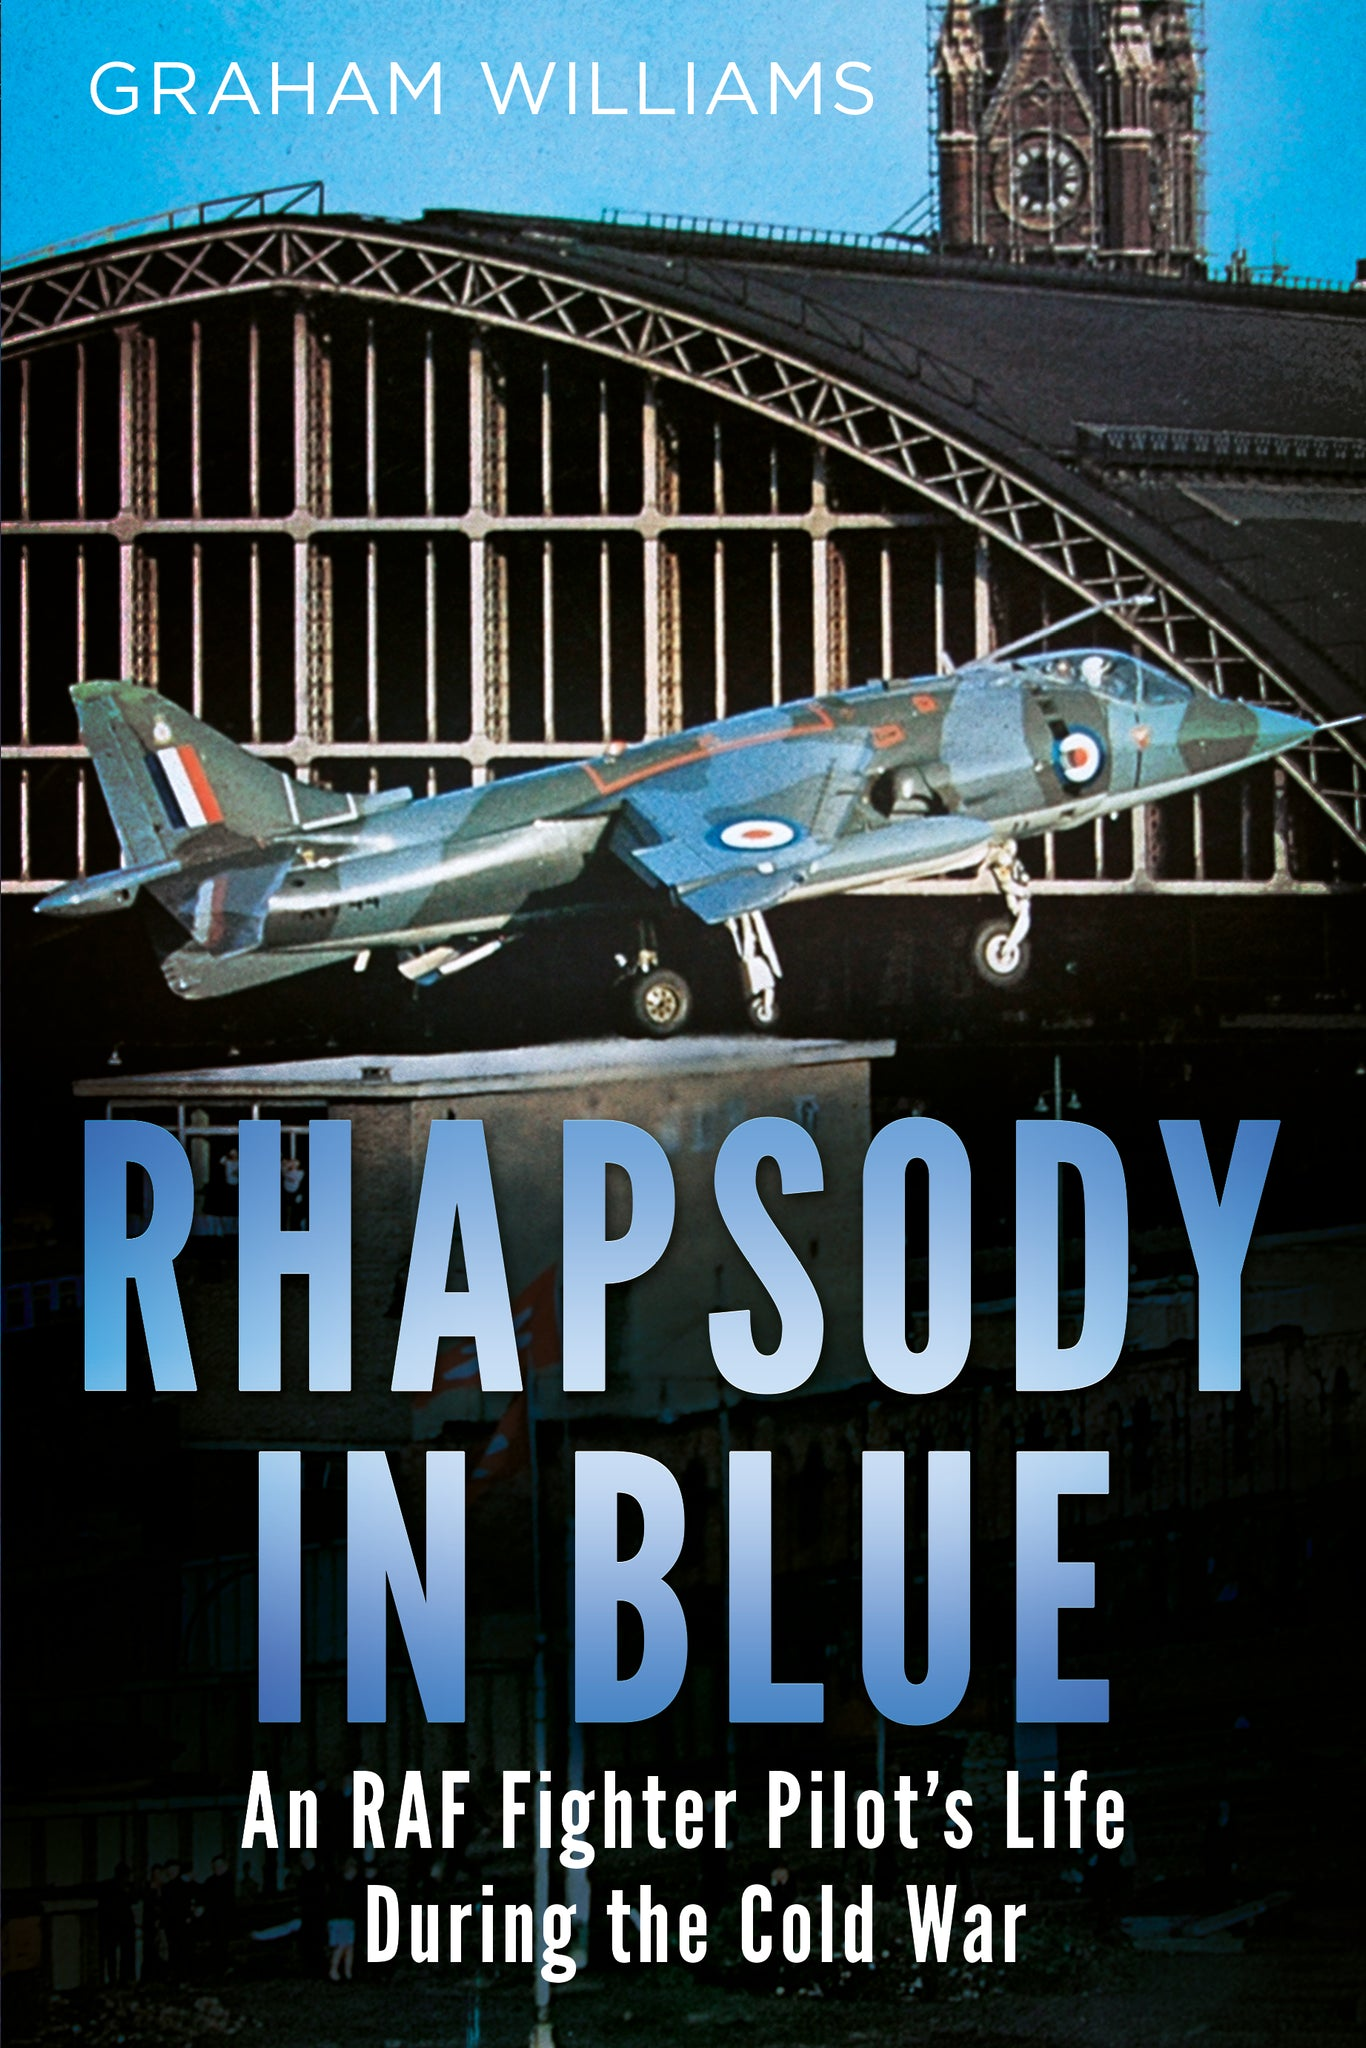 Rhapsody in Blue: An RAF Fighter Pilot's Life During the Cold War (paperback edition)